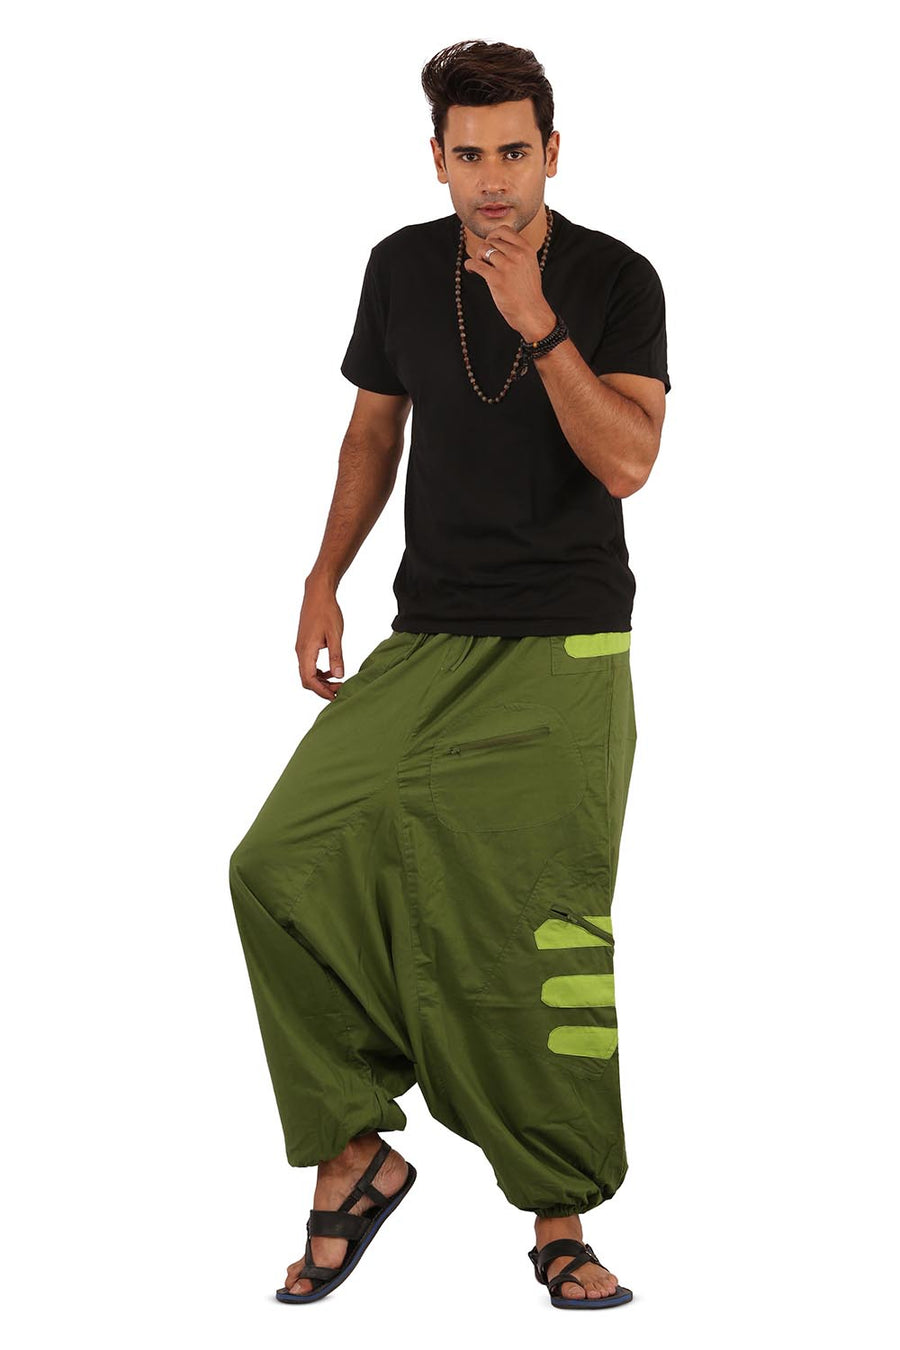 Harem Pants, Green Harem Pants, Men Harem Pants, Mens Harem Pants, Boho Pants, Genie Pants, Hippie Pants, Wide Leg Pants, Show me Hippie Pants, Show me some Mens Harem Pants, Show me some Womens Harem Pants, What is a harem pant, Show me some baggy pants, I want to buy harem pants, cool harem pants, Wide leg harem Pants, Cheap Harem Pants, Show me best harem pants, Highly rated Harem Pants, Sarouel, Haremshose, Afgani Pants, One Size Fits All Pants,Show me  XXXL Pants